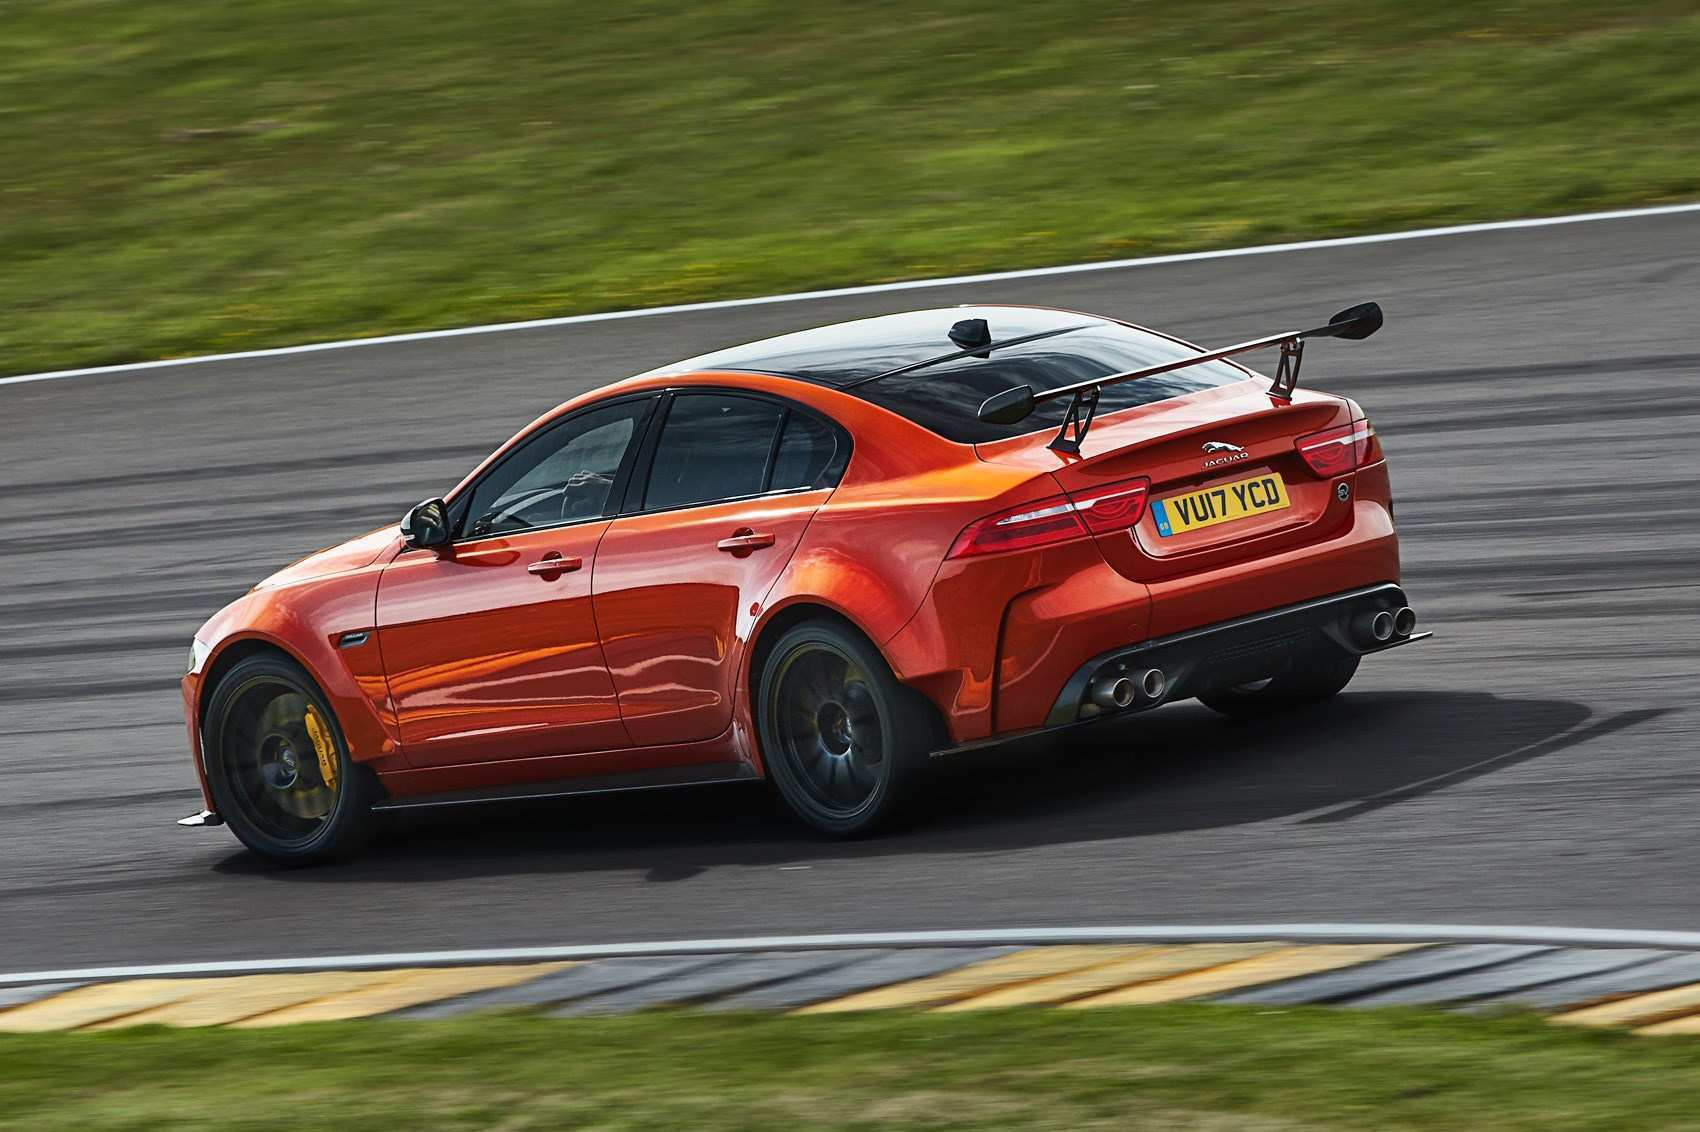 66 Gallery of 2020 Jaguar Xe Sv Project 8 Release Date by 2020 Jaguar Xe Sv Project 8